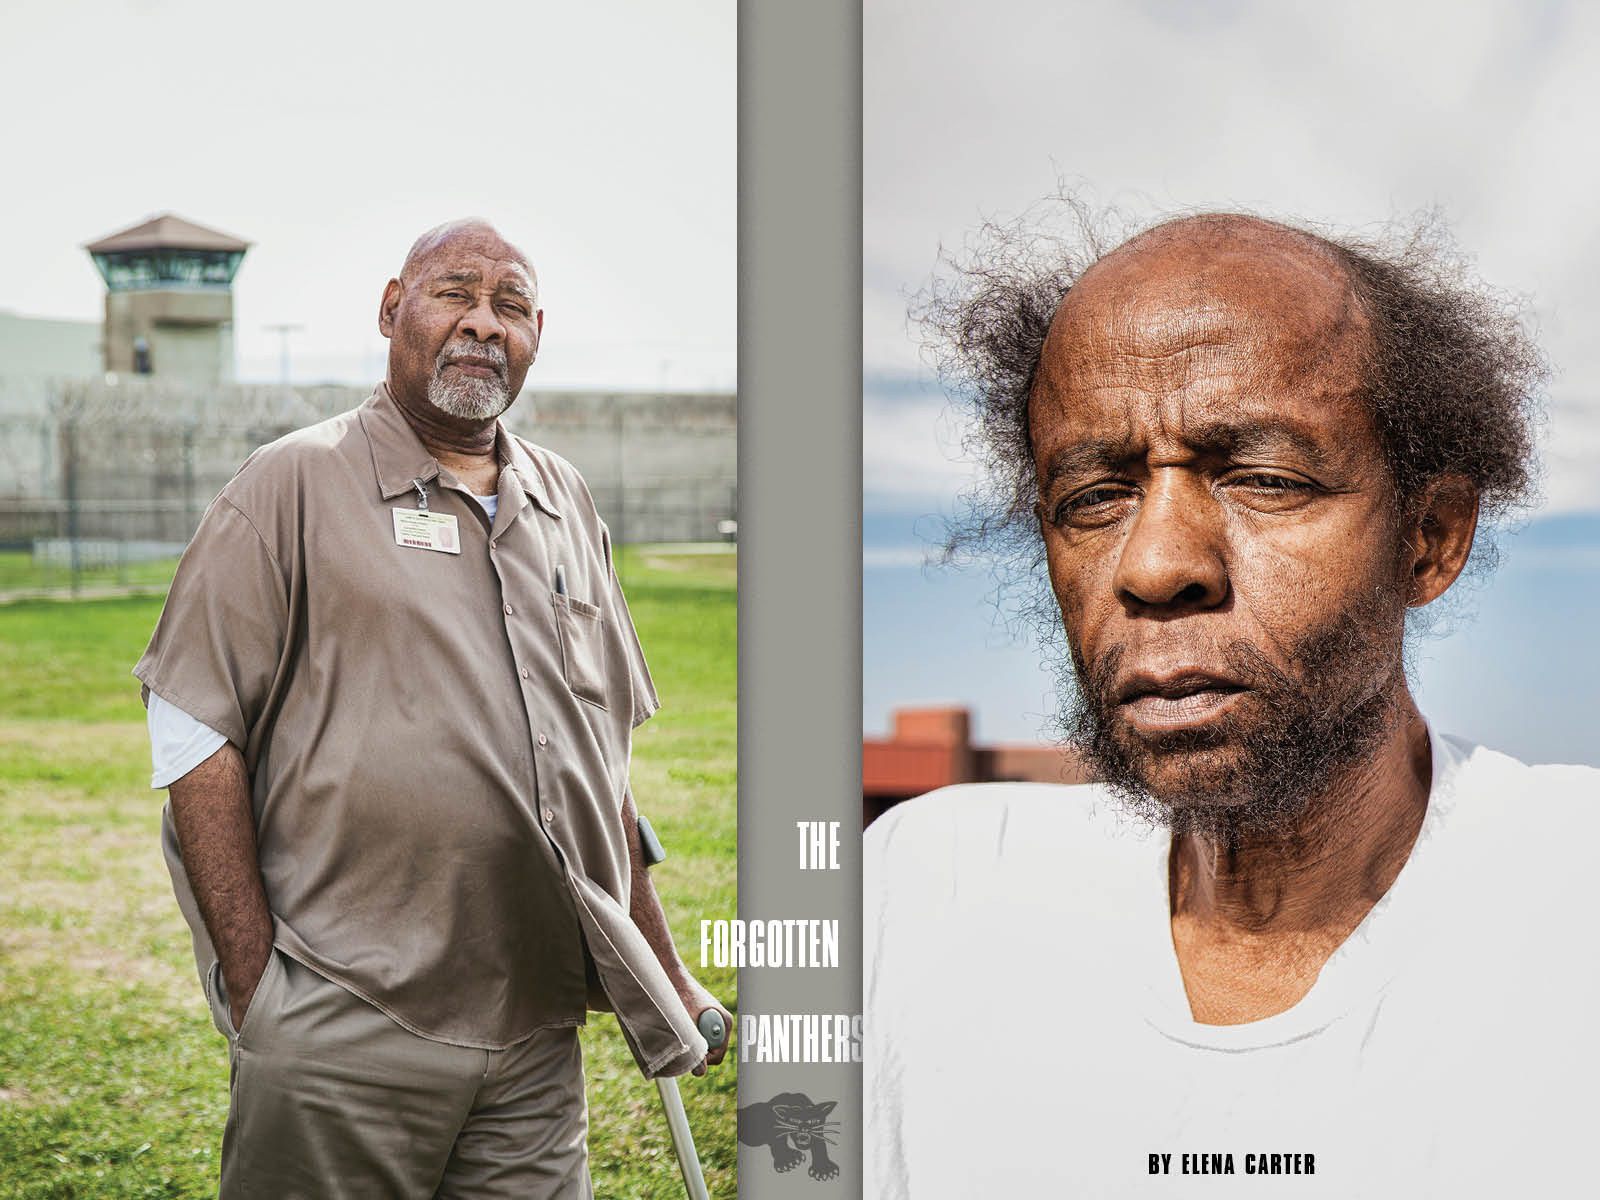 Ed Poindexter (left) and Mondo we Langa (right) at the Nebraska State Penitentiary in Lincoln NE, February 2016. We Langa passed away at the prison on March 11, 2016. (Photo by Ron Levine)